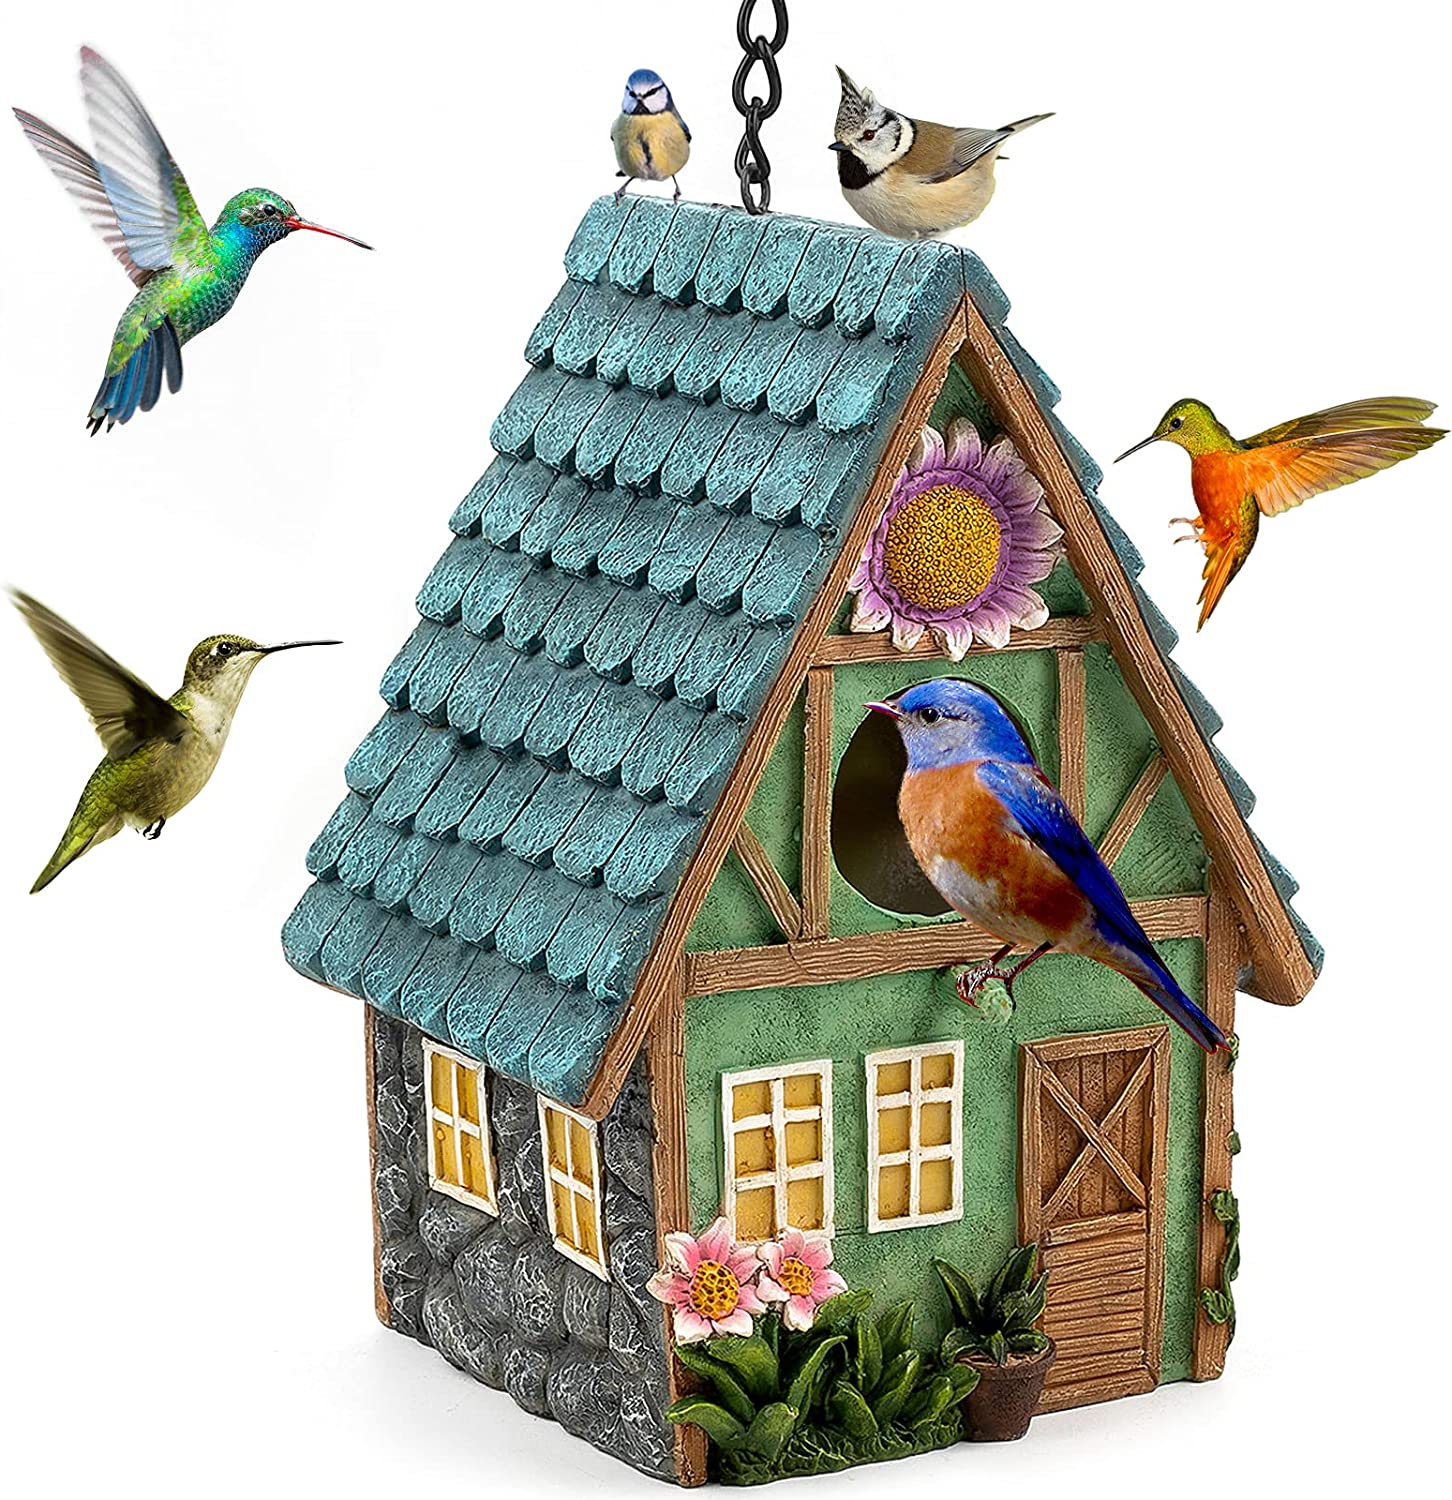 JIAYIWU Bird Houses for Outside, birdhouses, residences Used for Outdoor Bluebirds Tits?Hummingbirds? Swallows and Other Bird, Indoor and Garden Decoration